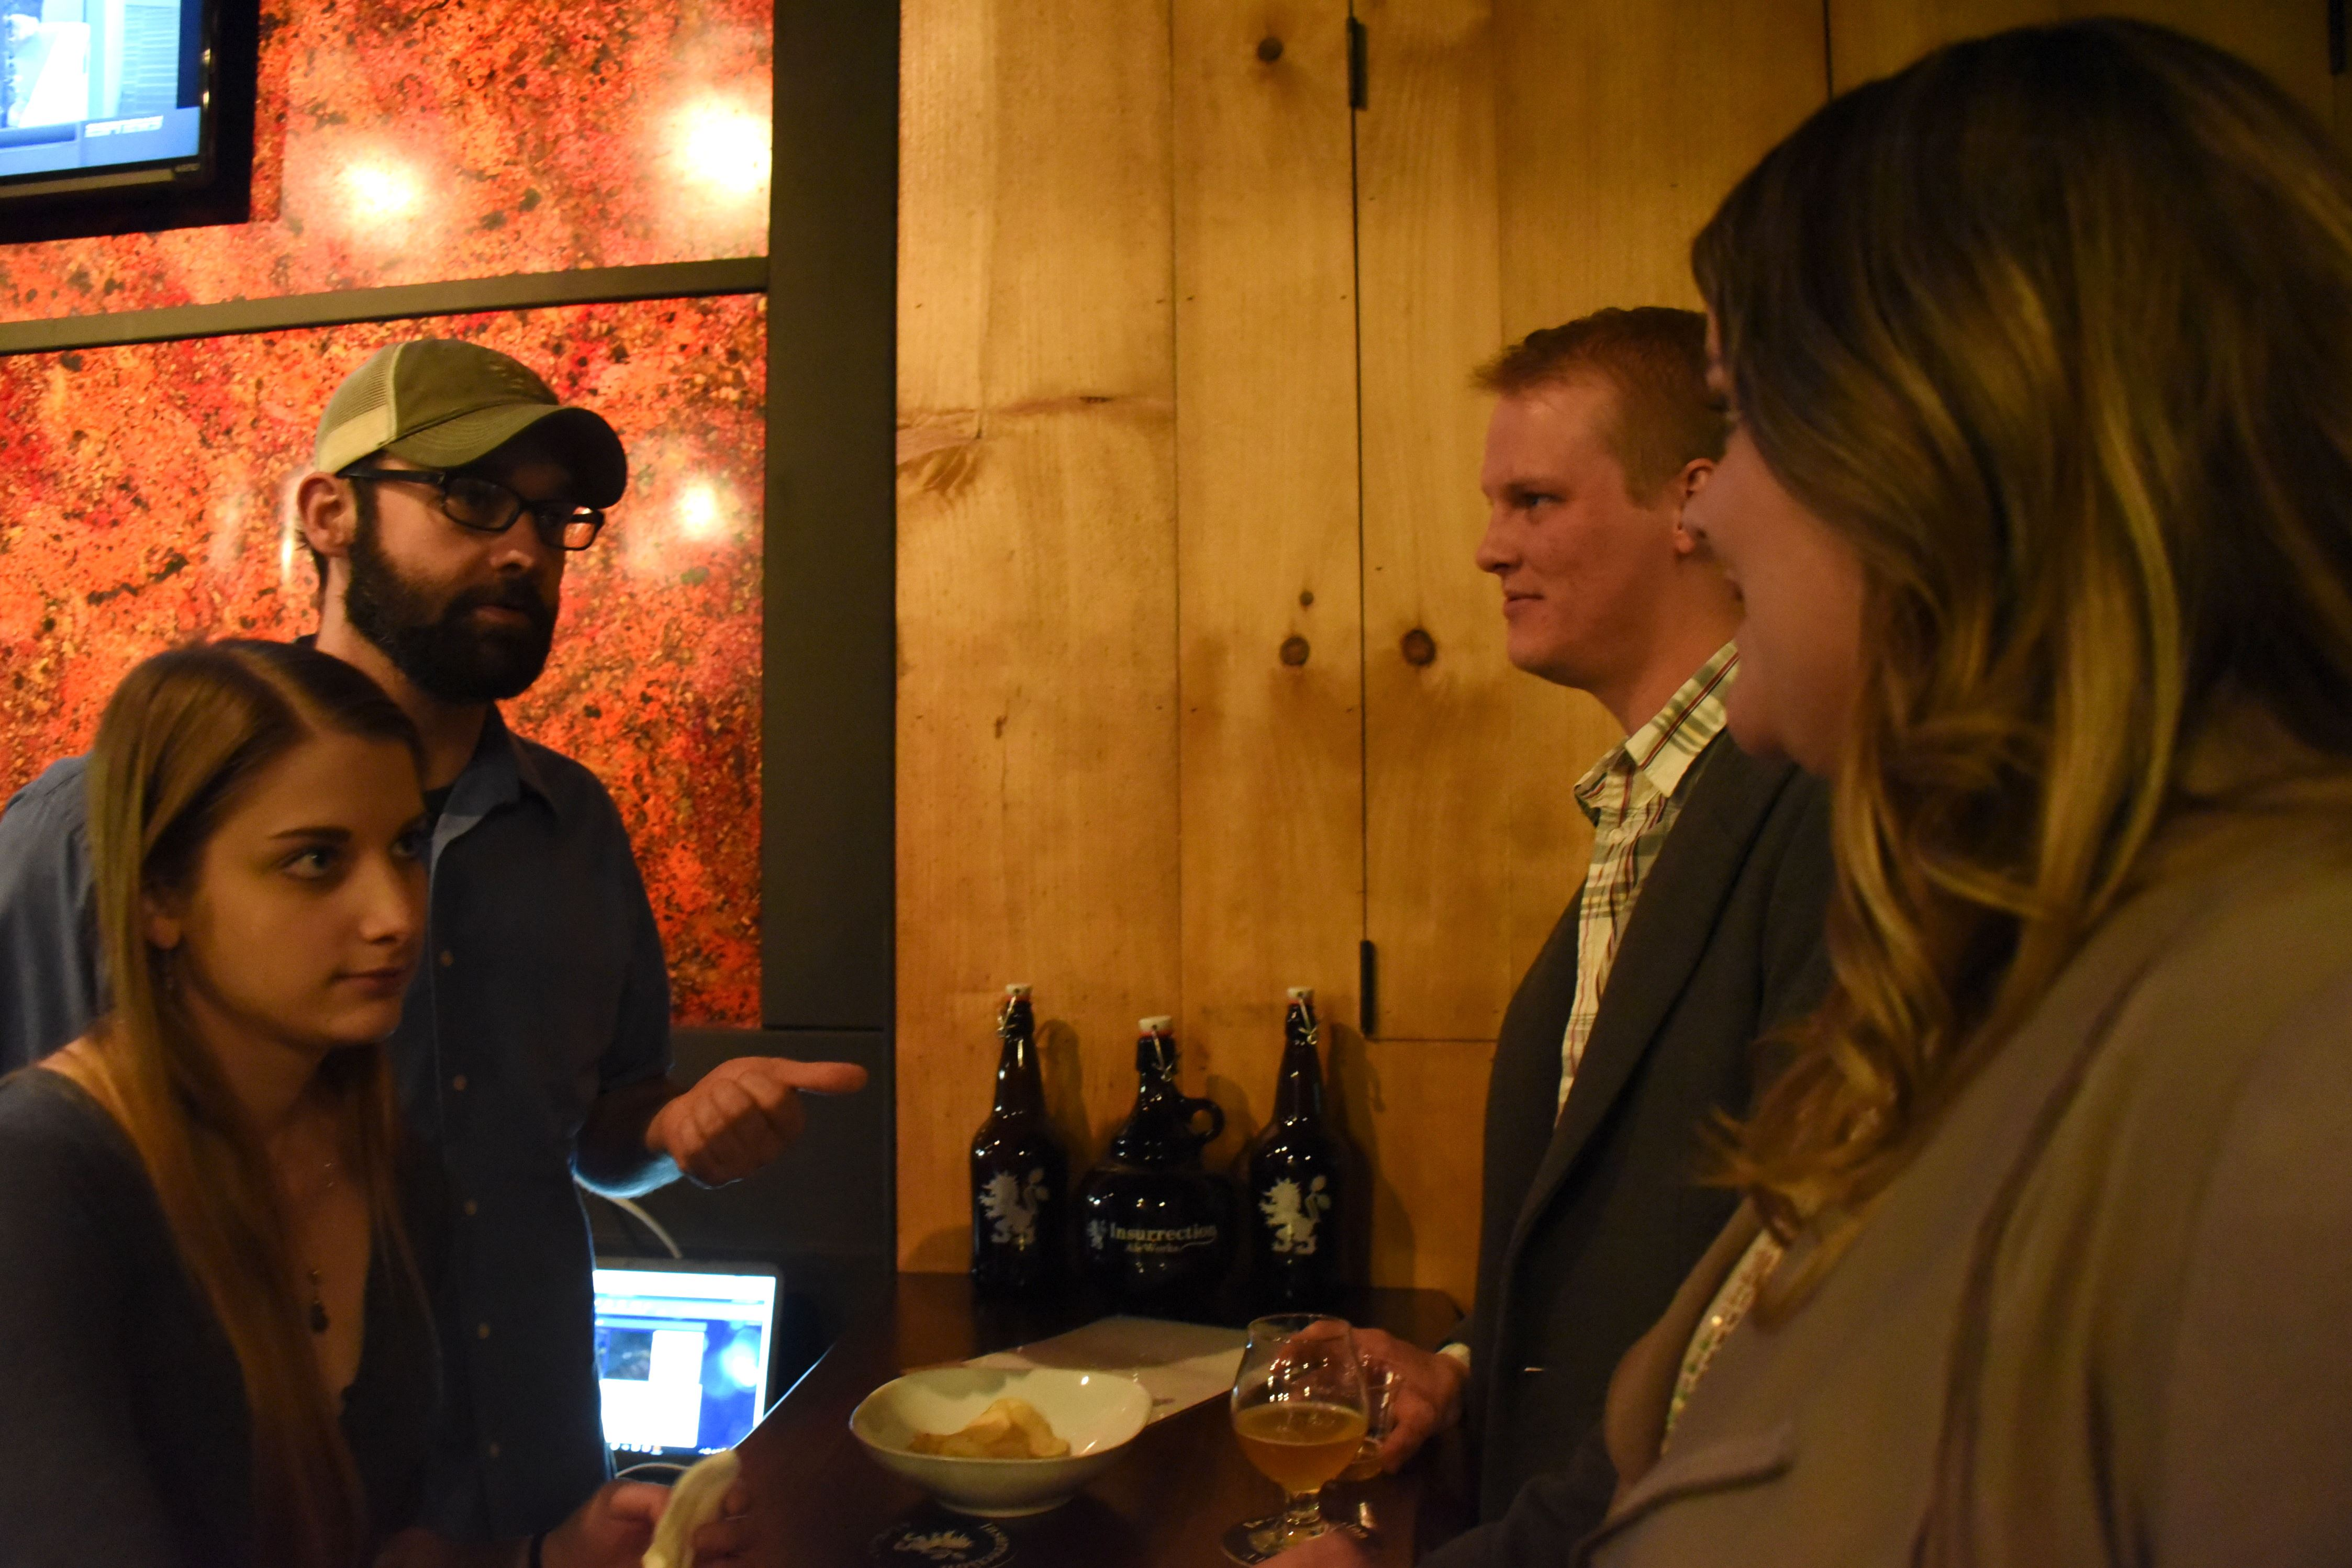 20151121KJInsurrectionAleworksOpening5-4 From left, Jeannie Hatok, Brad Primozic, Jake Morrison and Meghan Carlson have a conversation at the end of the bar during the private opening of Insurrection Aleworks.